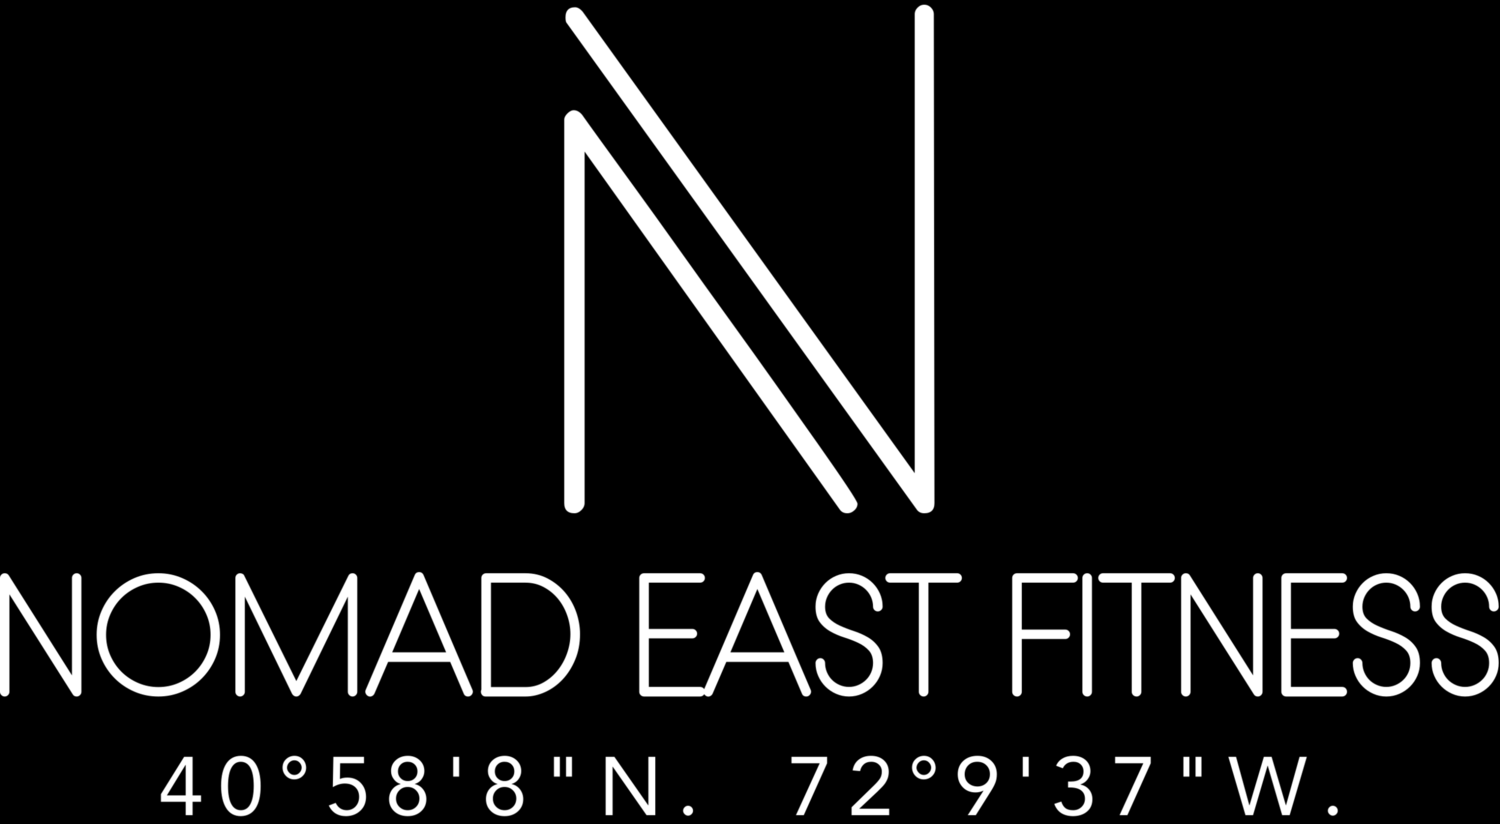 Nomad East Fitness